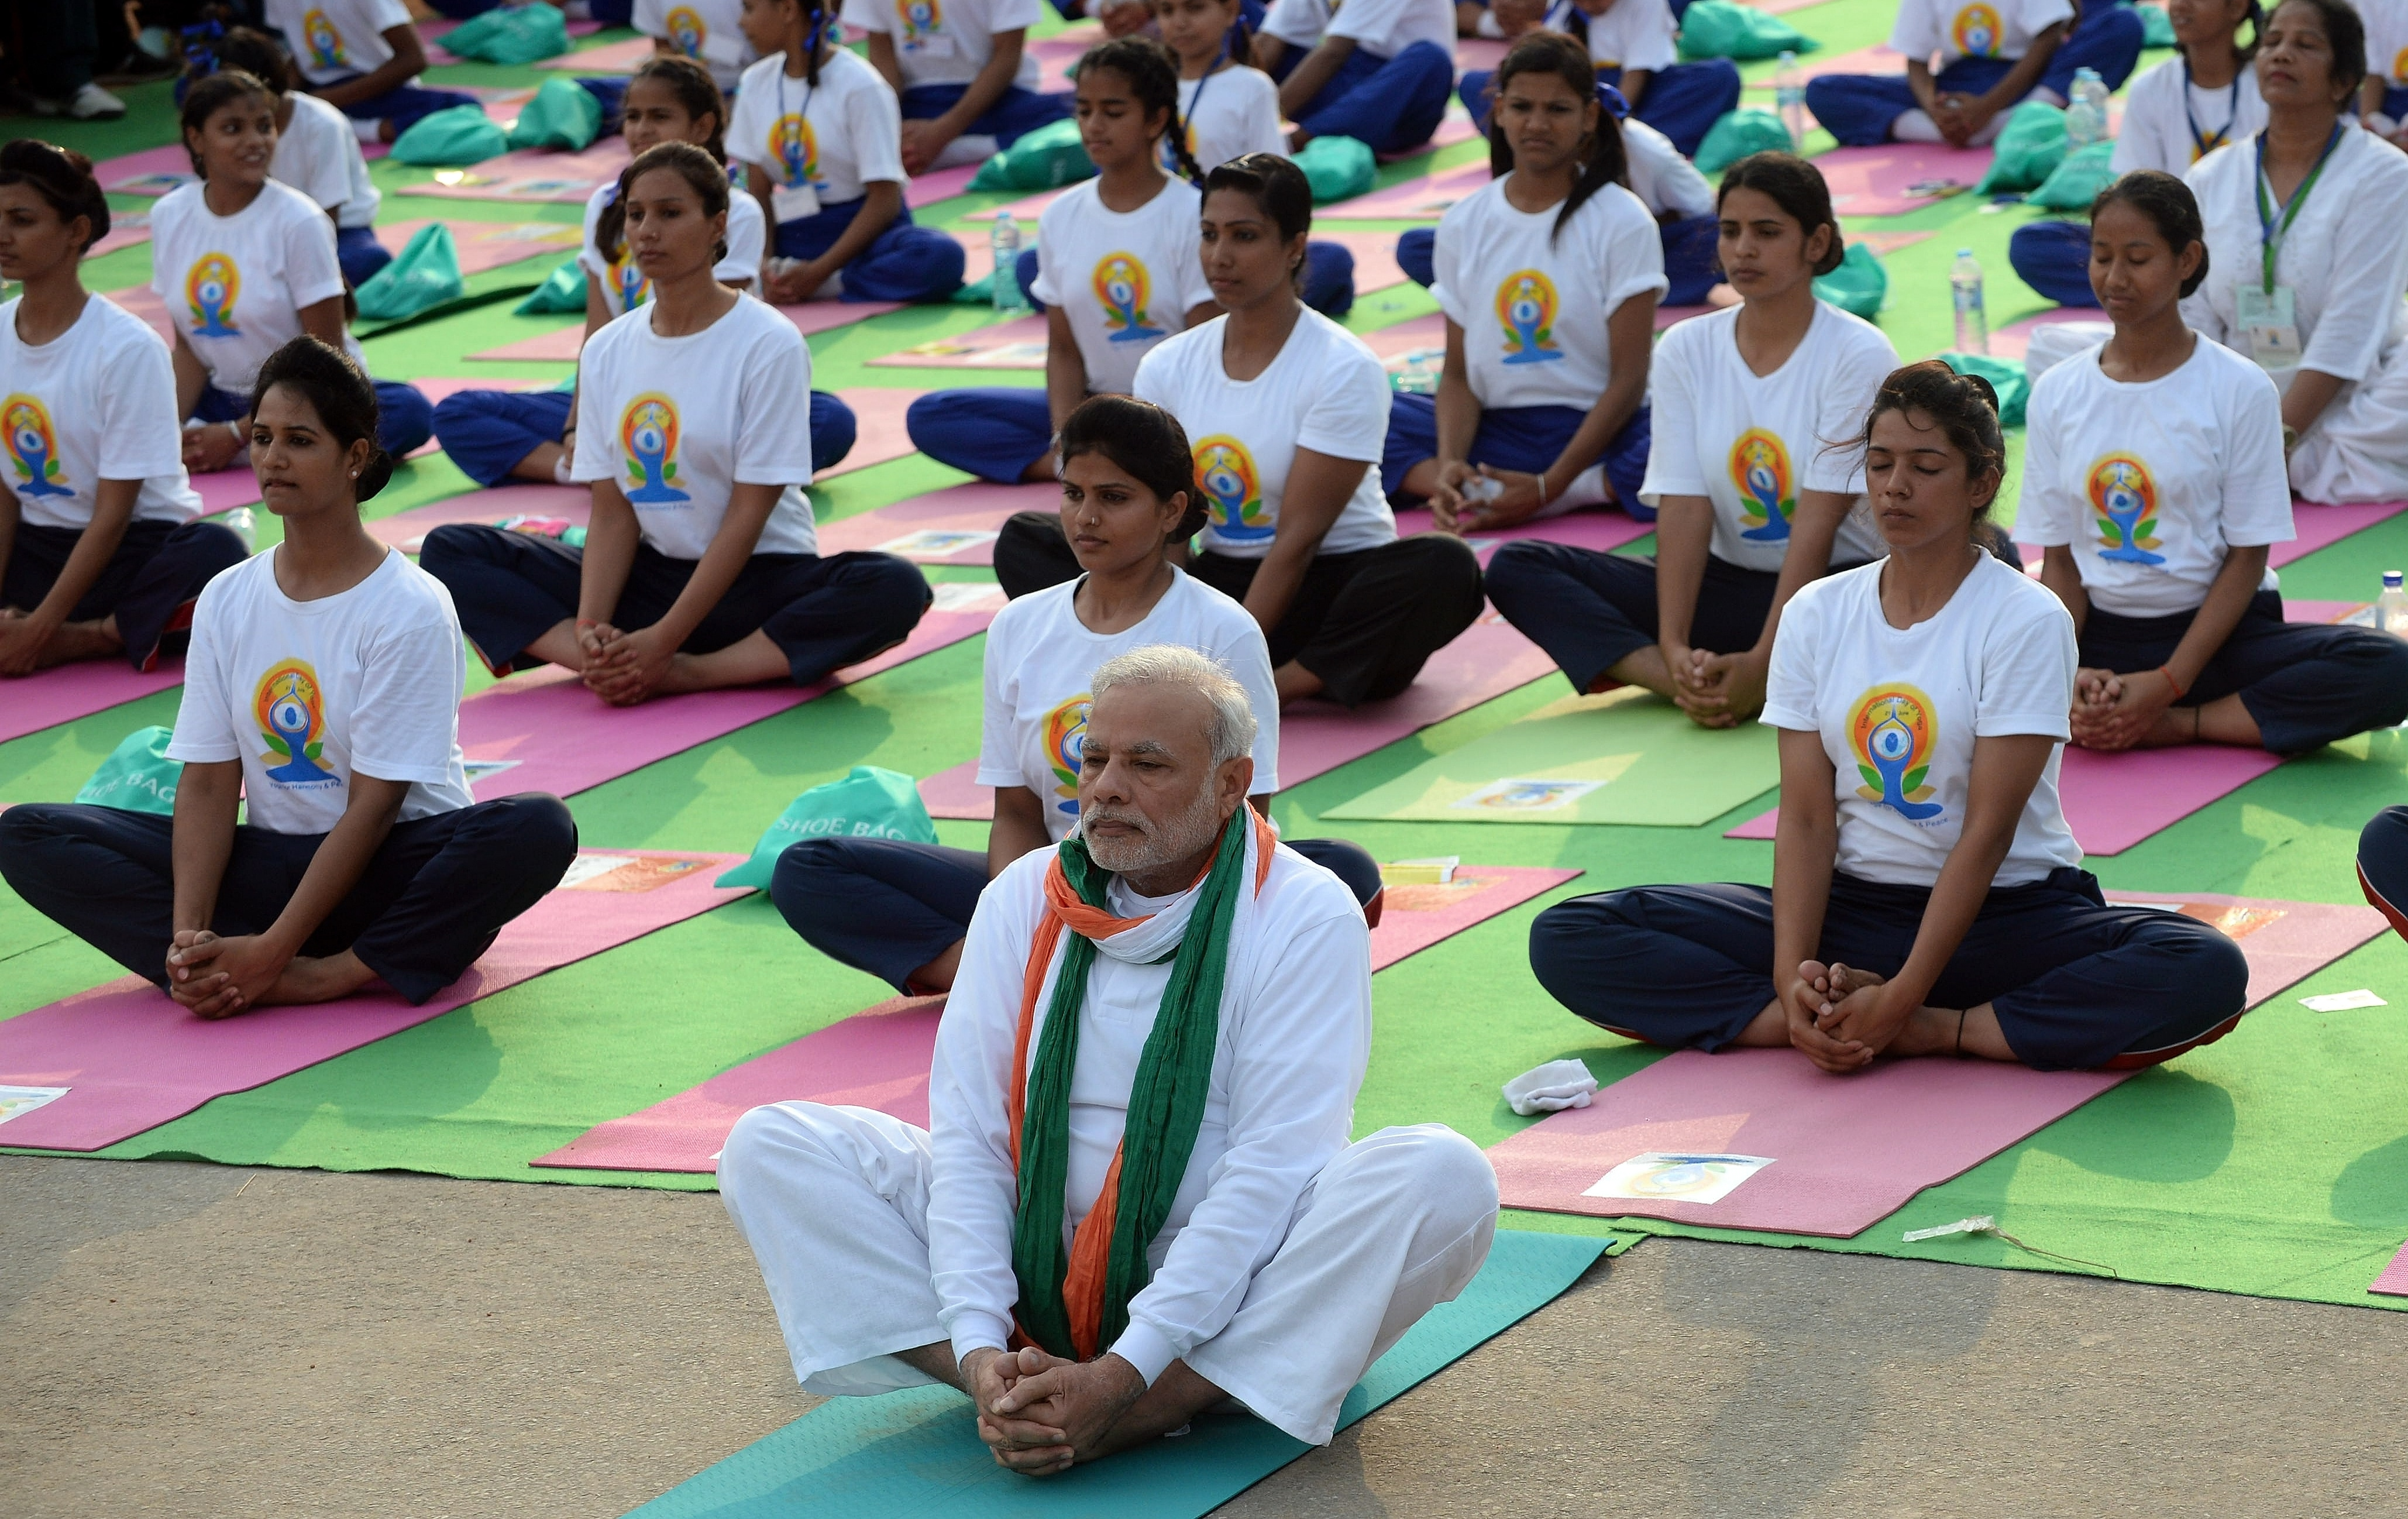 Top 10: PM Modi Performs Yoga With Thousands at Delhi\'s Rajpath